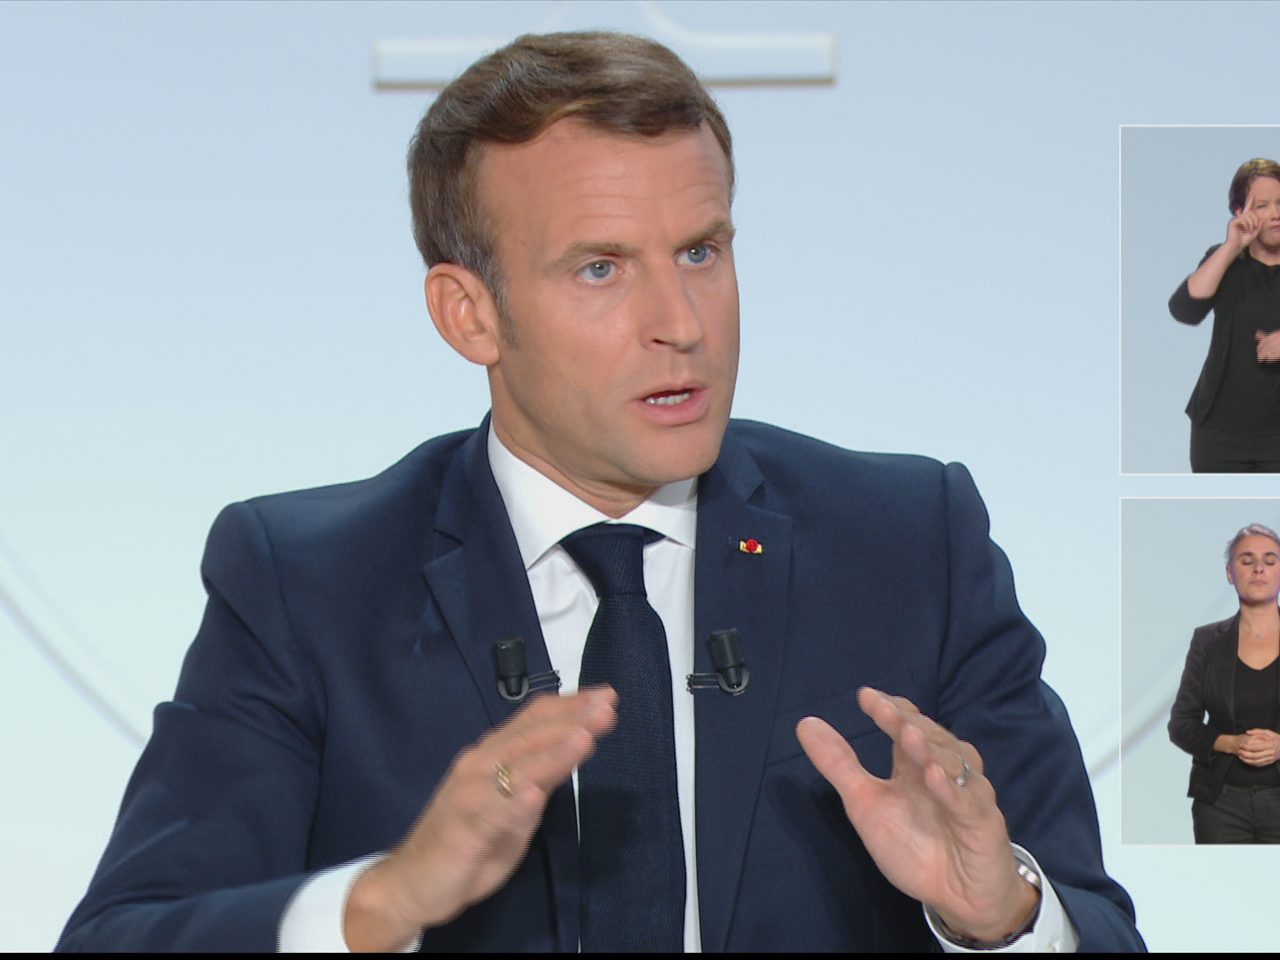 Covid 19 Macron Announces Four Week Curfew In Paris Region And Other Cities Starting Saturday